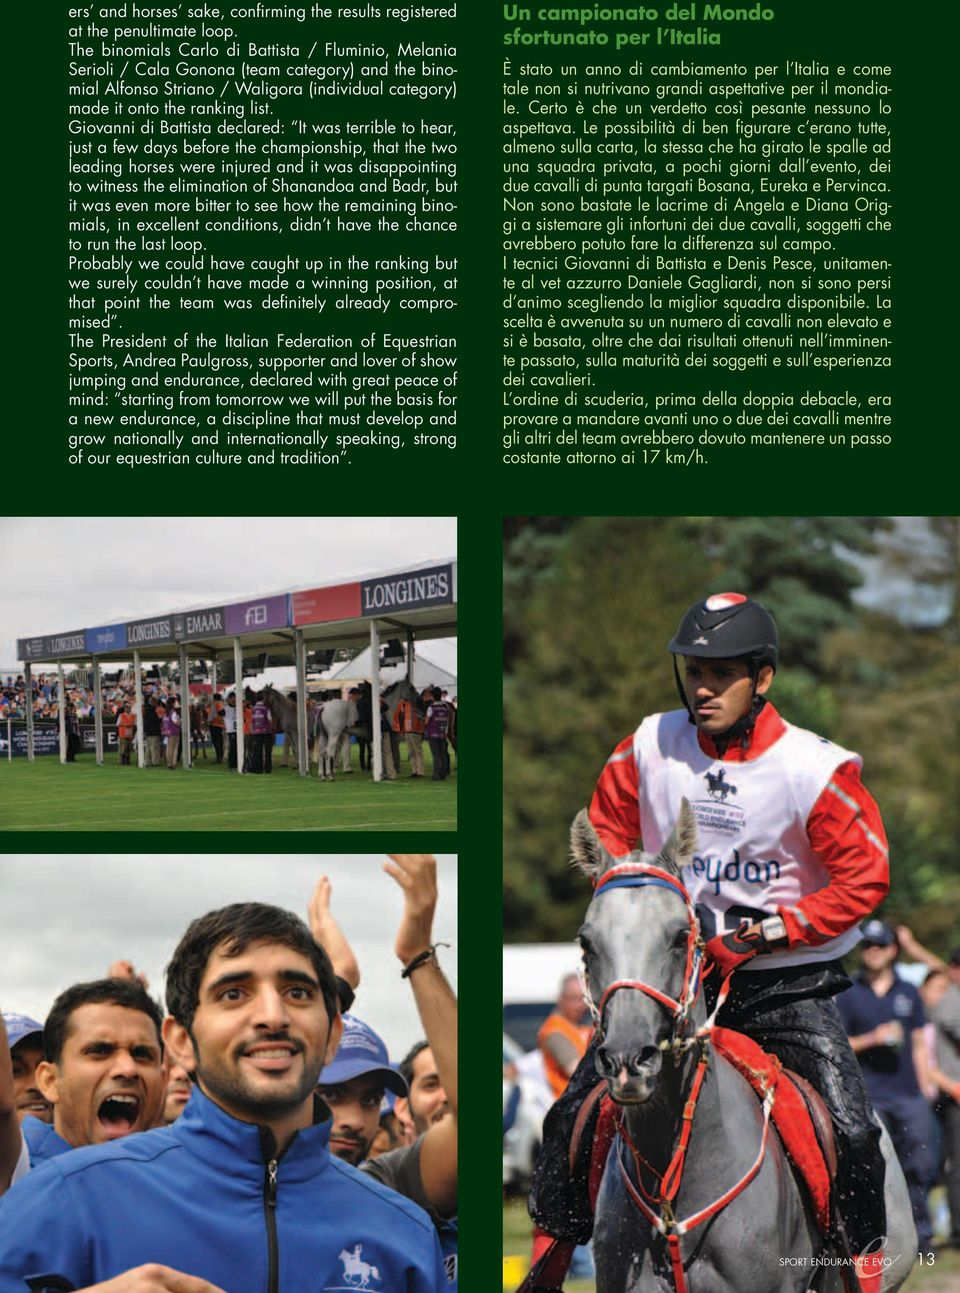 Giovanni di Battista declared: It was terrible to hear, just a few days before the championship, that the two leading horses were injured and it was disappointing to witness the elimination of